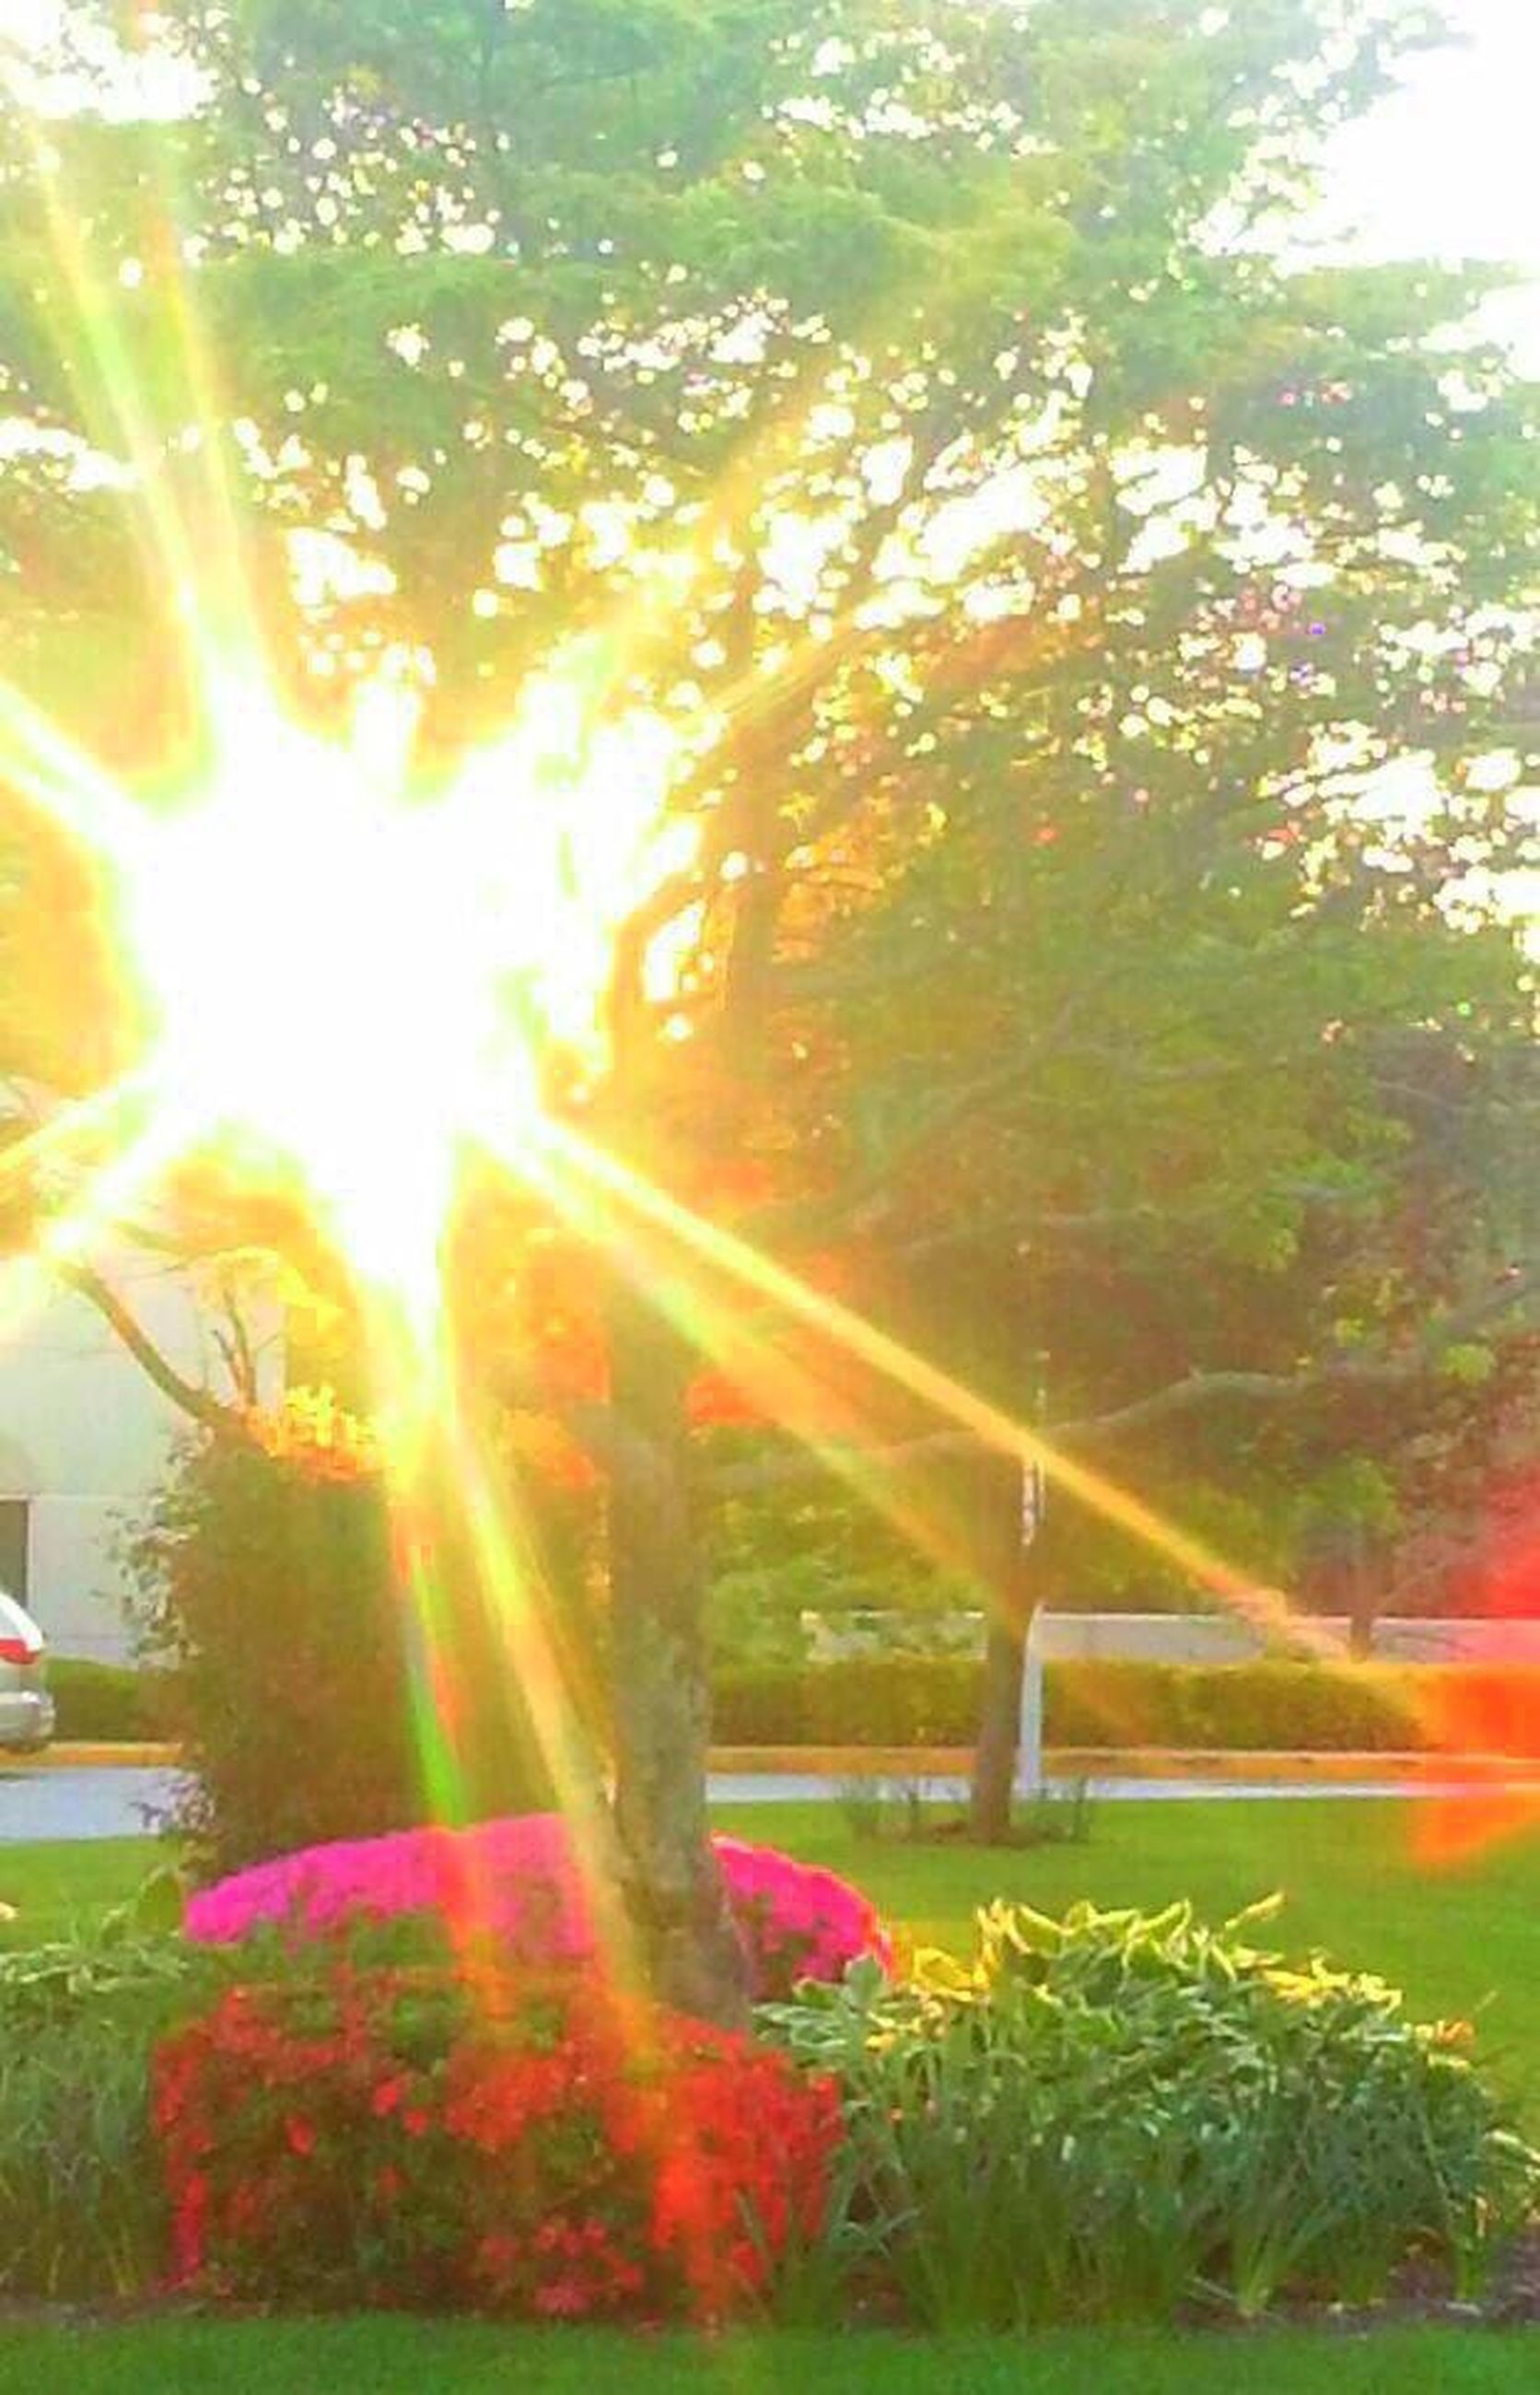 sunbeam, grass, sunlight, lens flare, nature, tree, growth, outdoors, sun, lawn, no people, flower, day, beauty in nature, plant, tranquility, scenics, flowerbed, building exterior, freshness, sky